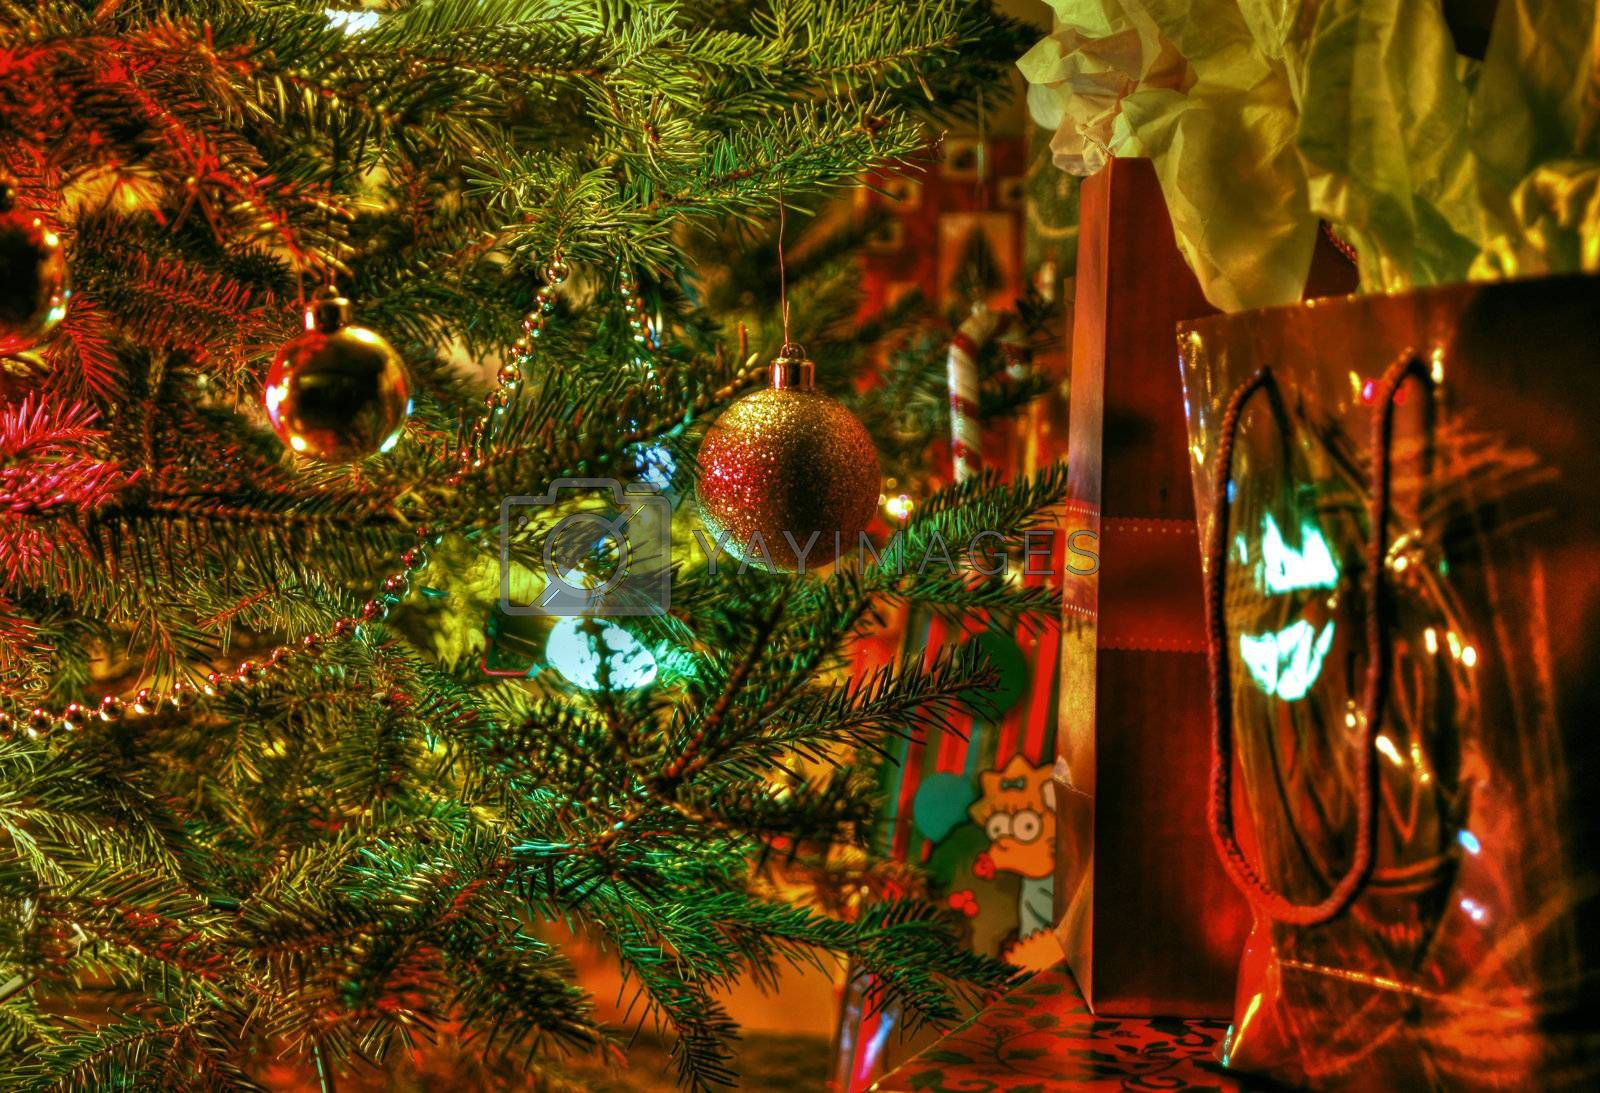 Wraped gifts under a Christmas tree and decorations